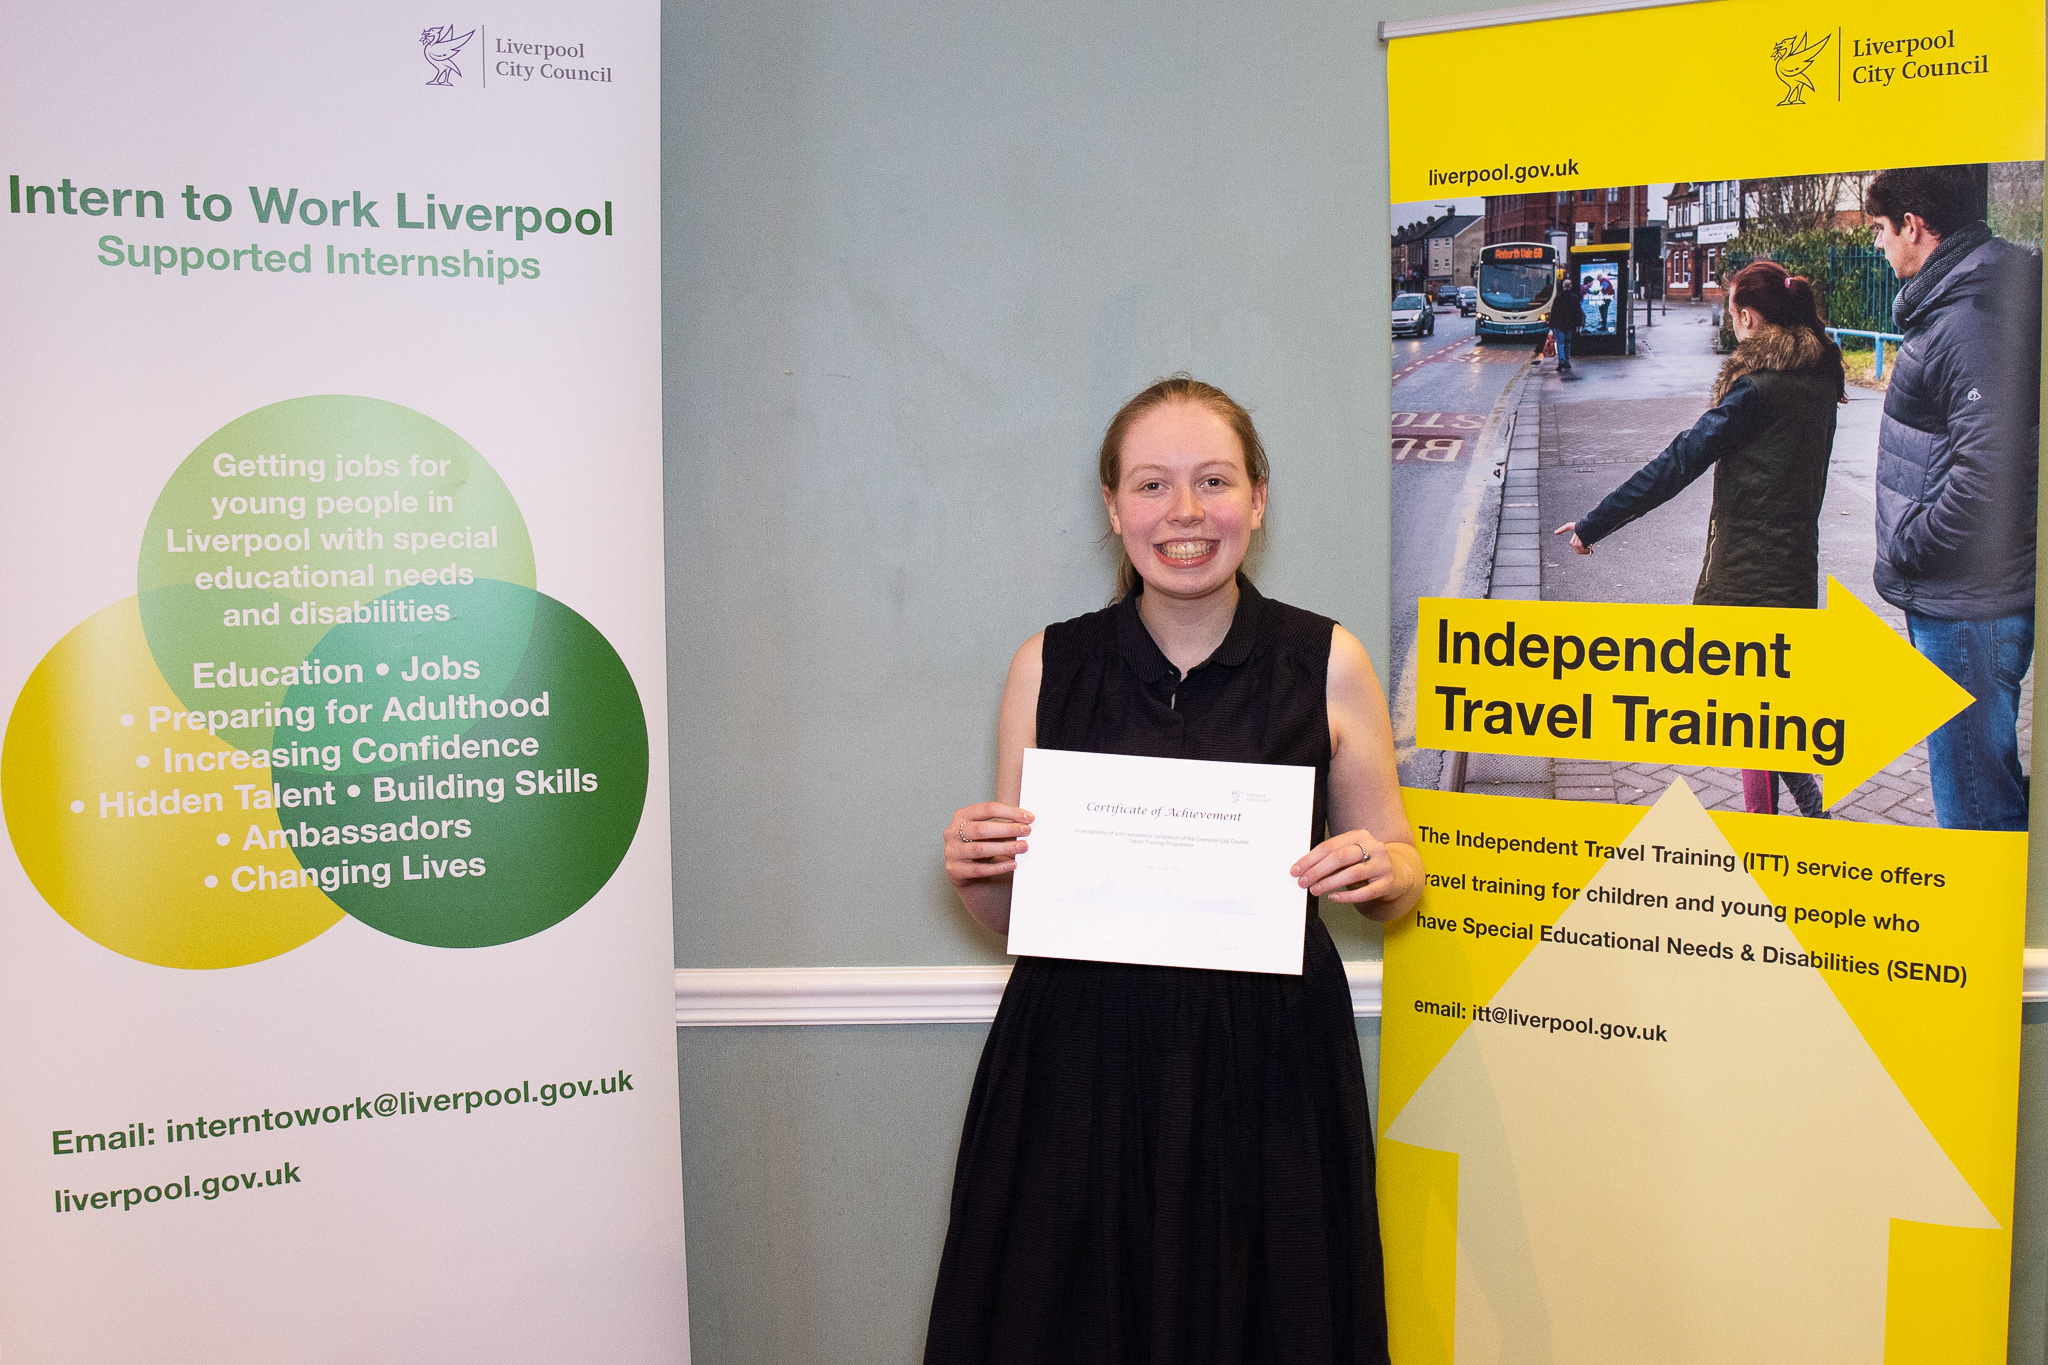 Saoirse from Abbot's Lea School with her independent travel training certificate.